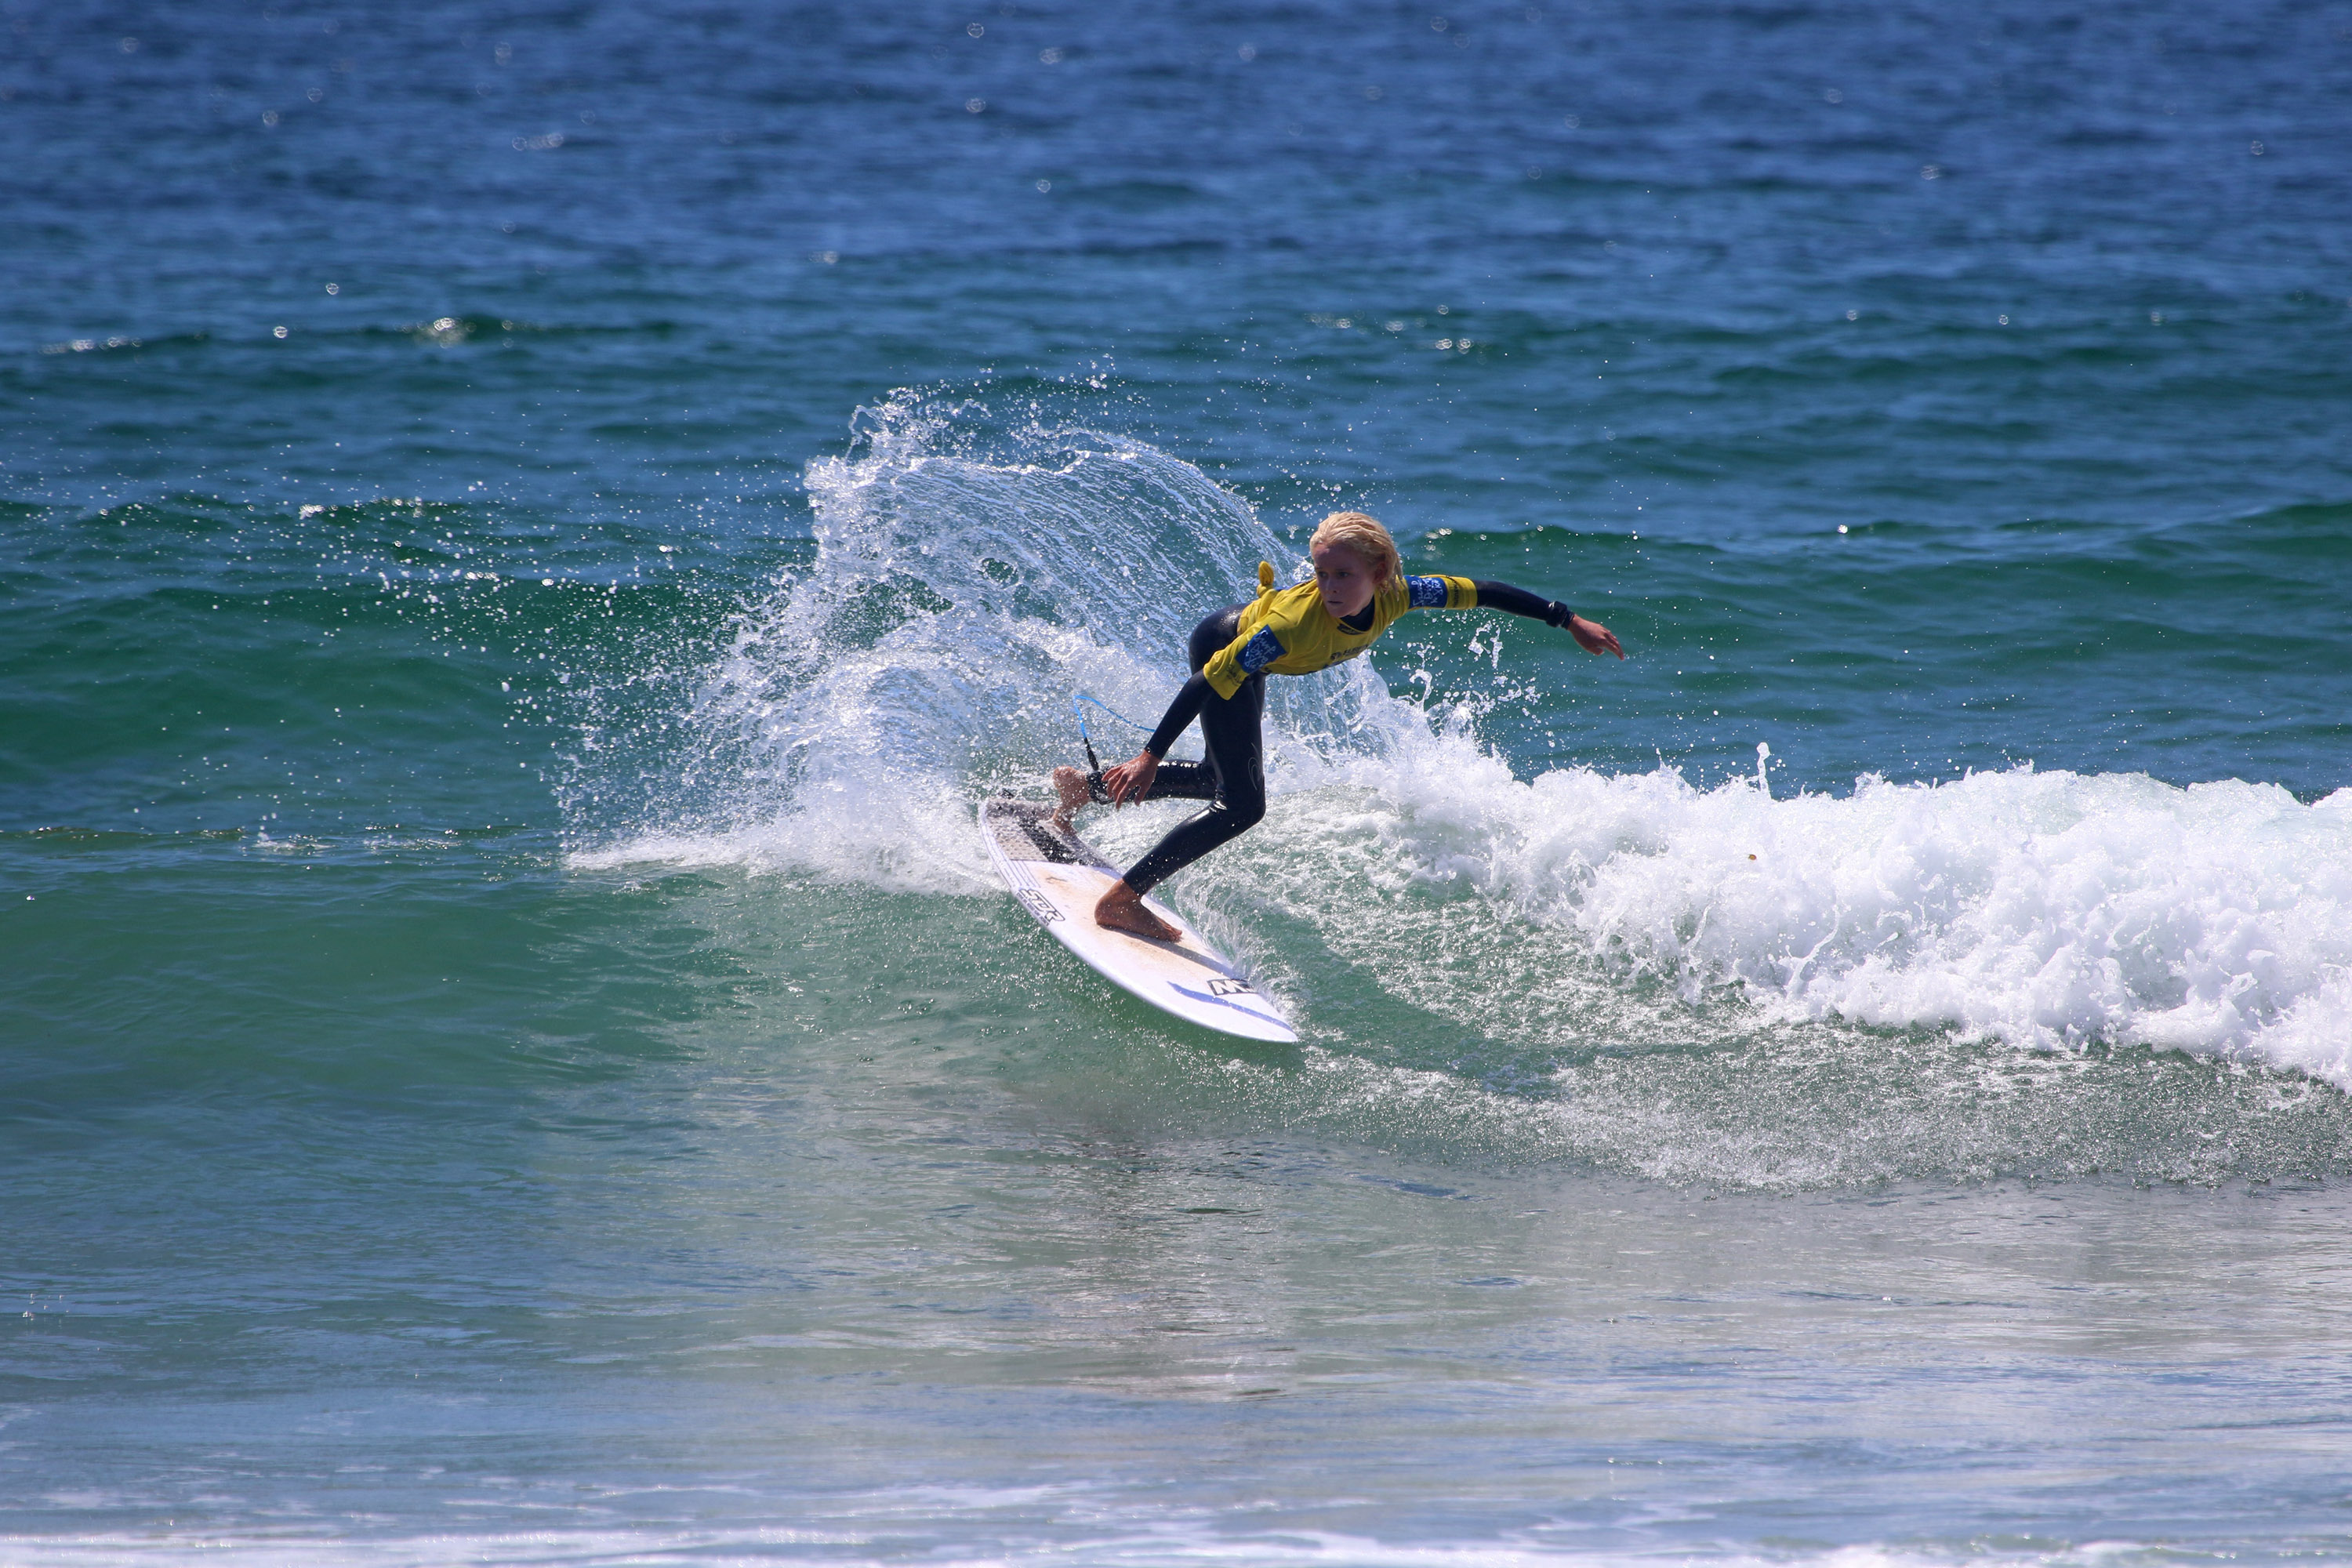 031253689e UNDER-14 SEMI-FINALISTS DECIDED ON DAY 5 OF THE SURF DIVE N SKI AUSTRALIAN  JUNIOR SURFING TITLES